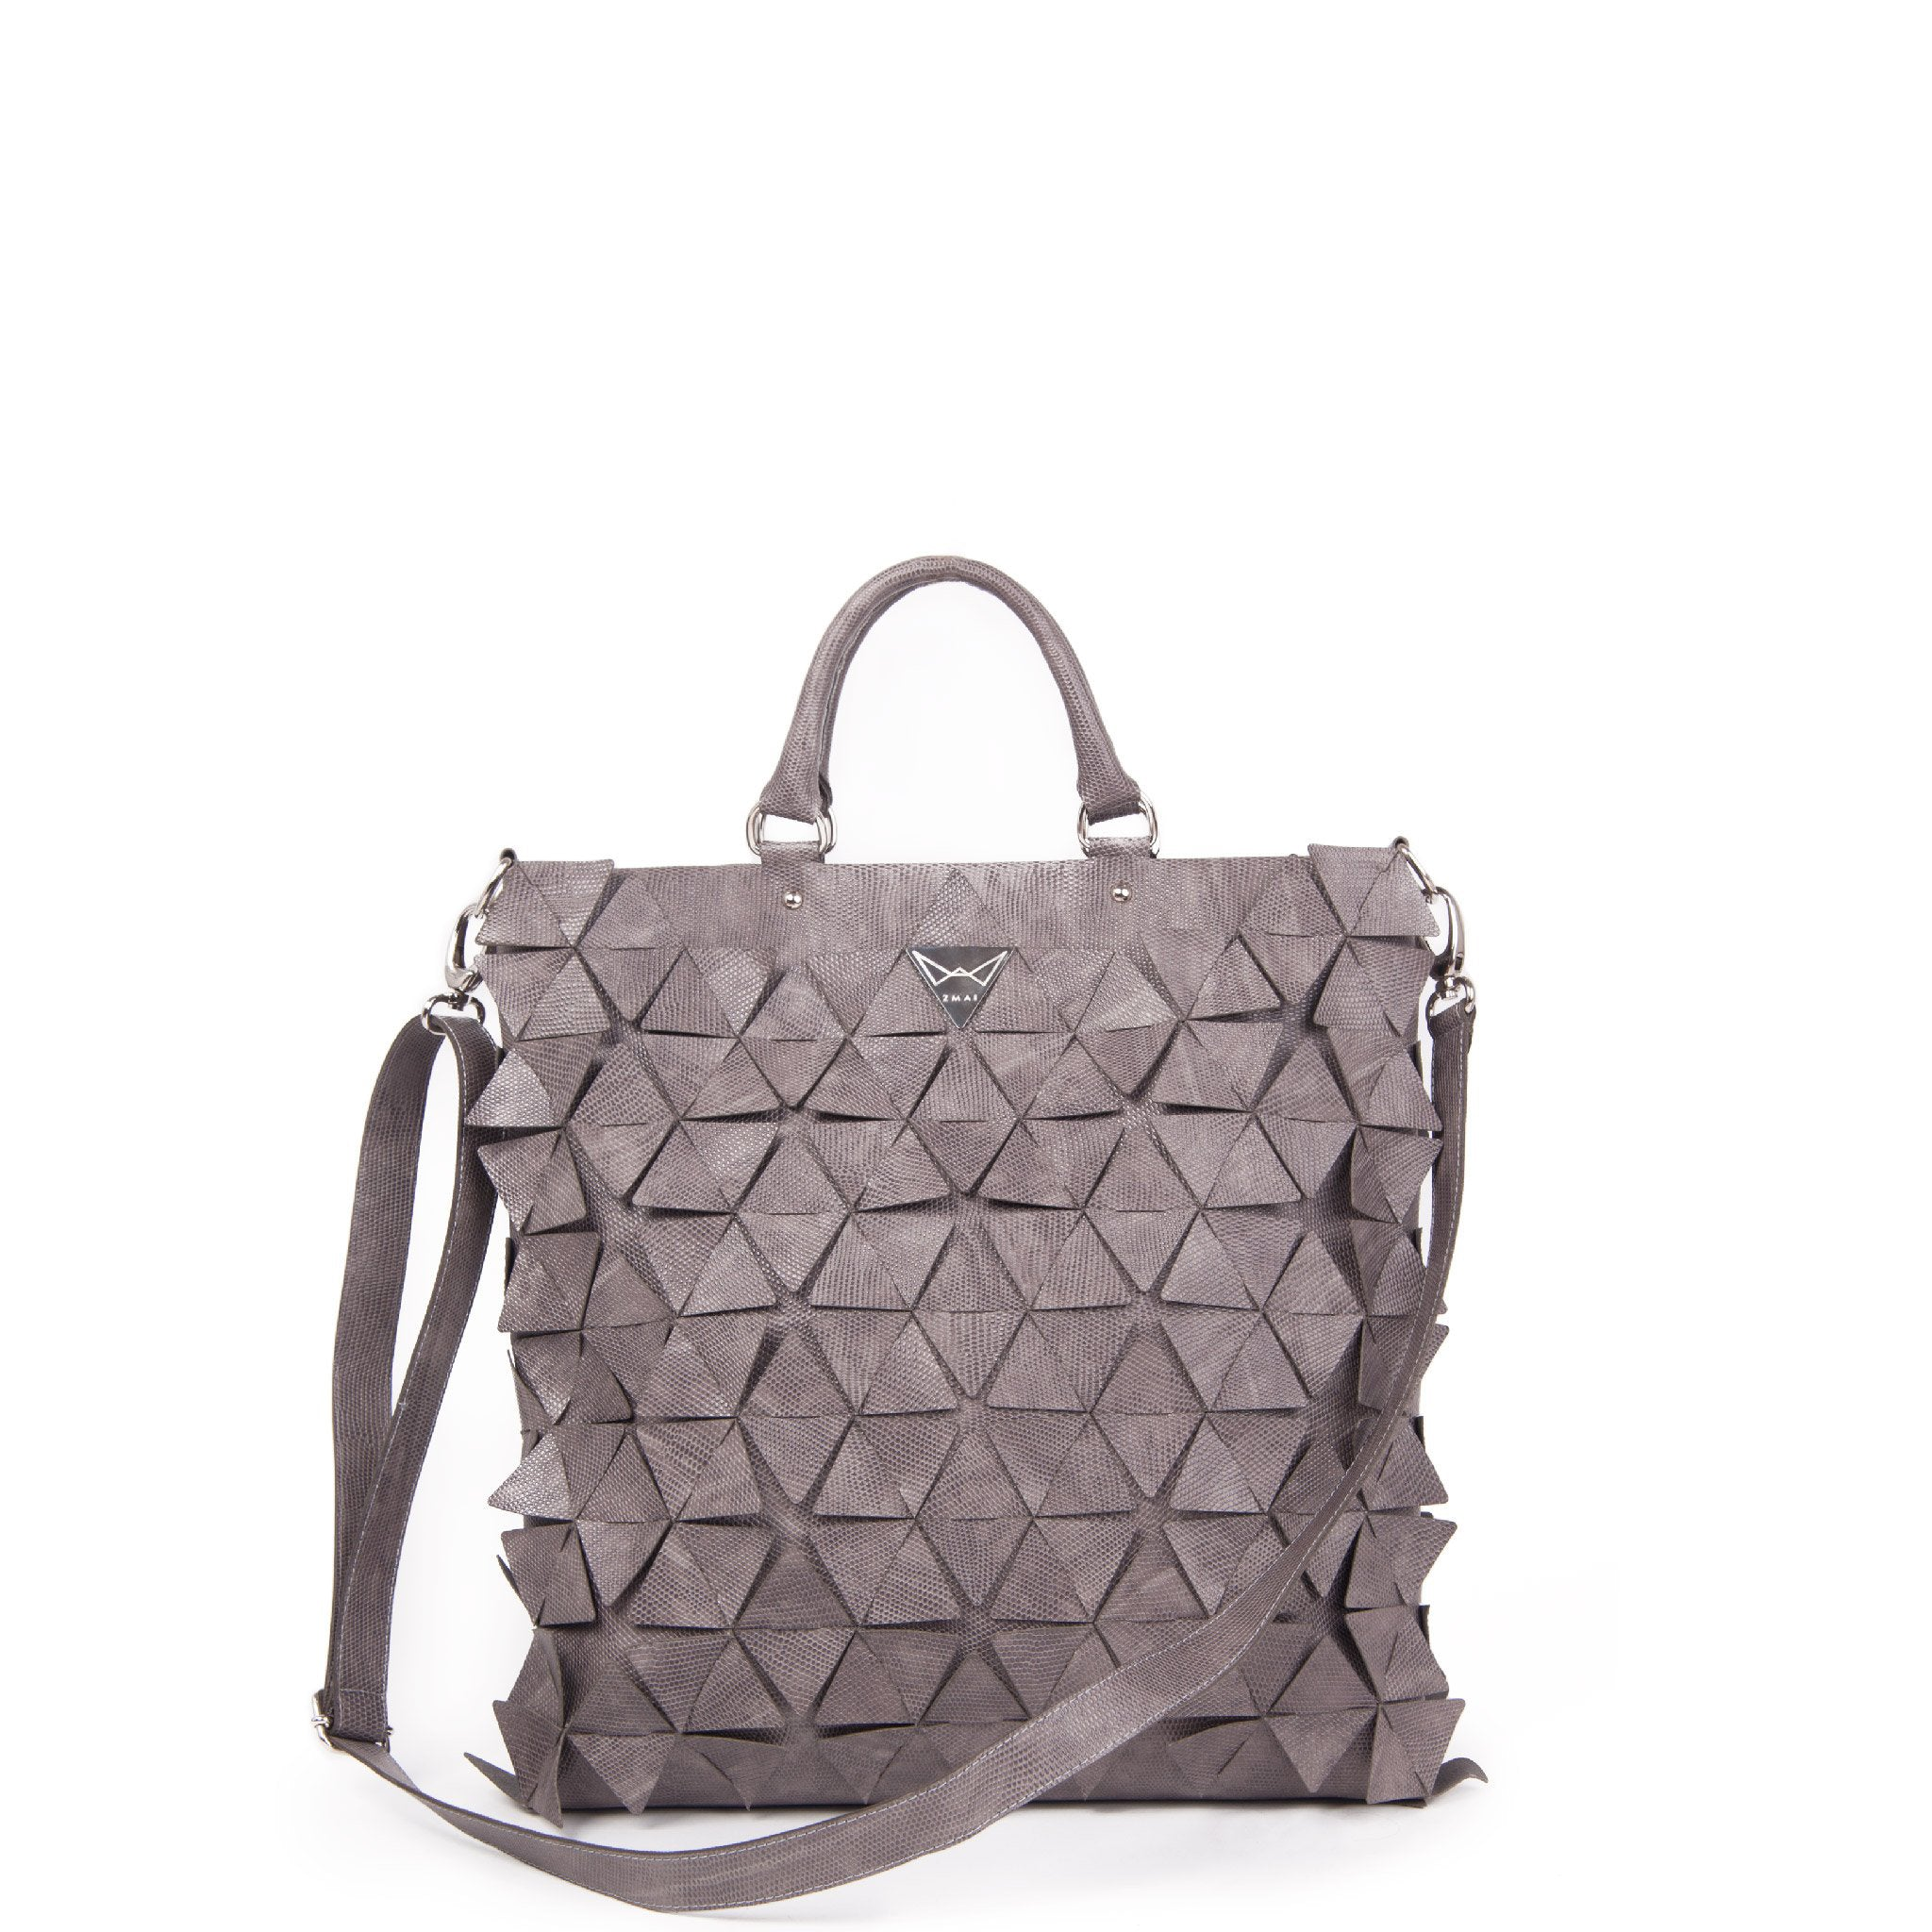 STAR TOTE BAG Carol warm grey